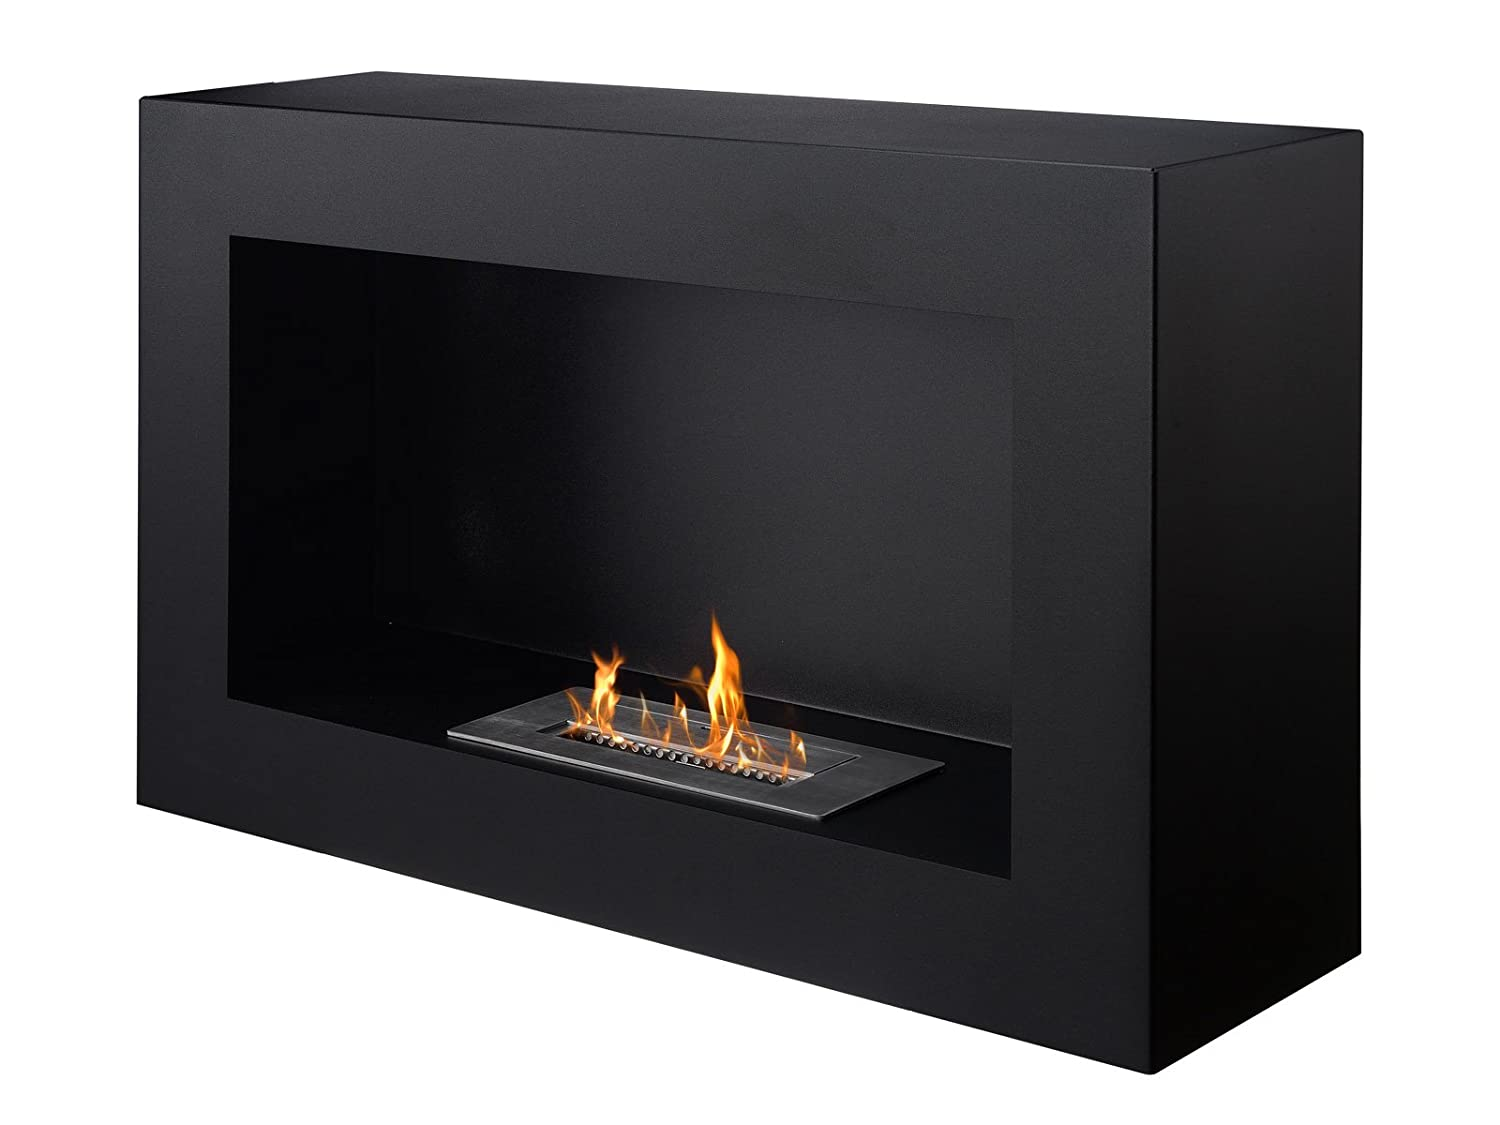 Ignis Spectrum Freestanding Ventless Ethanol Fireplace Ignis Products FSF-011